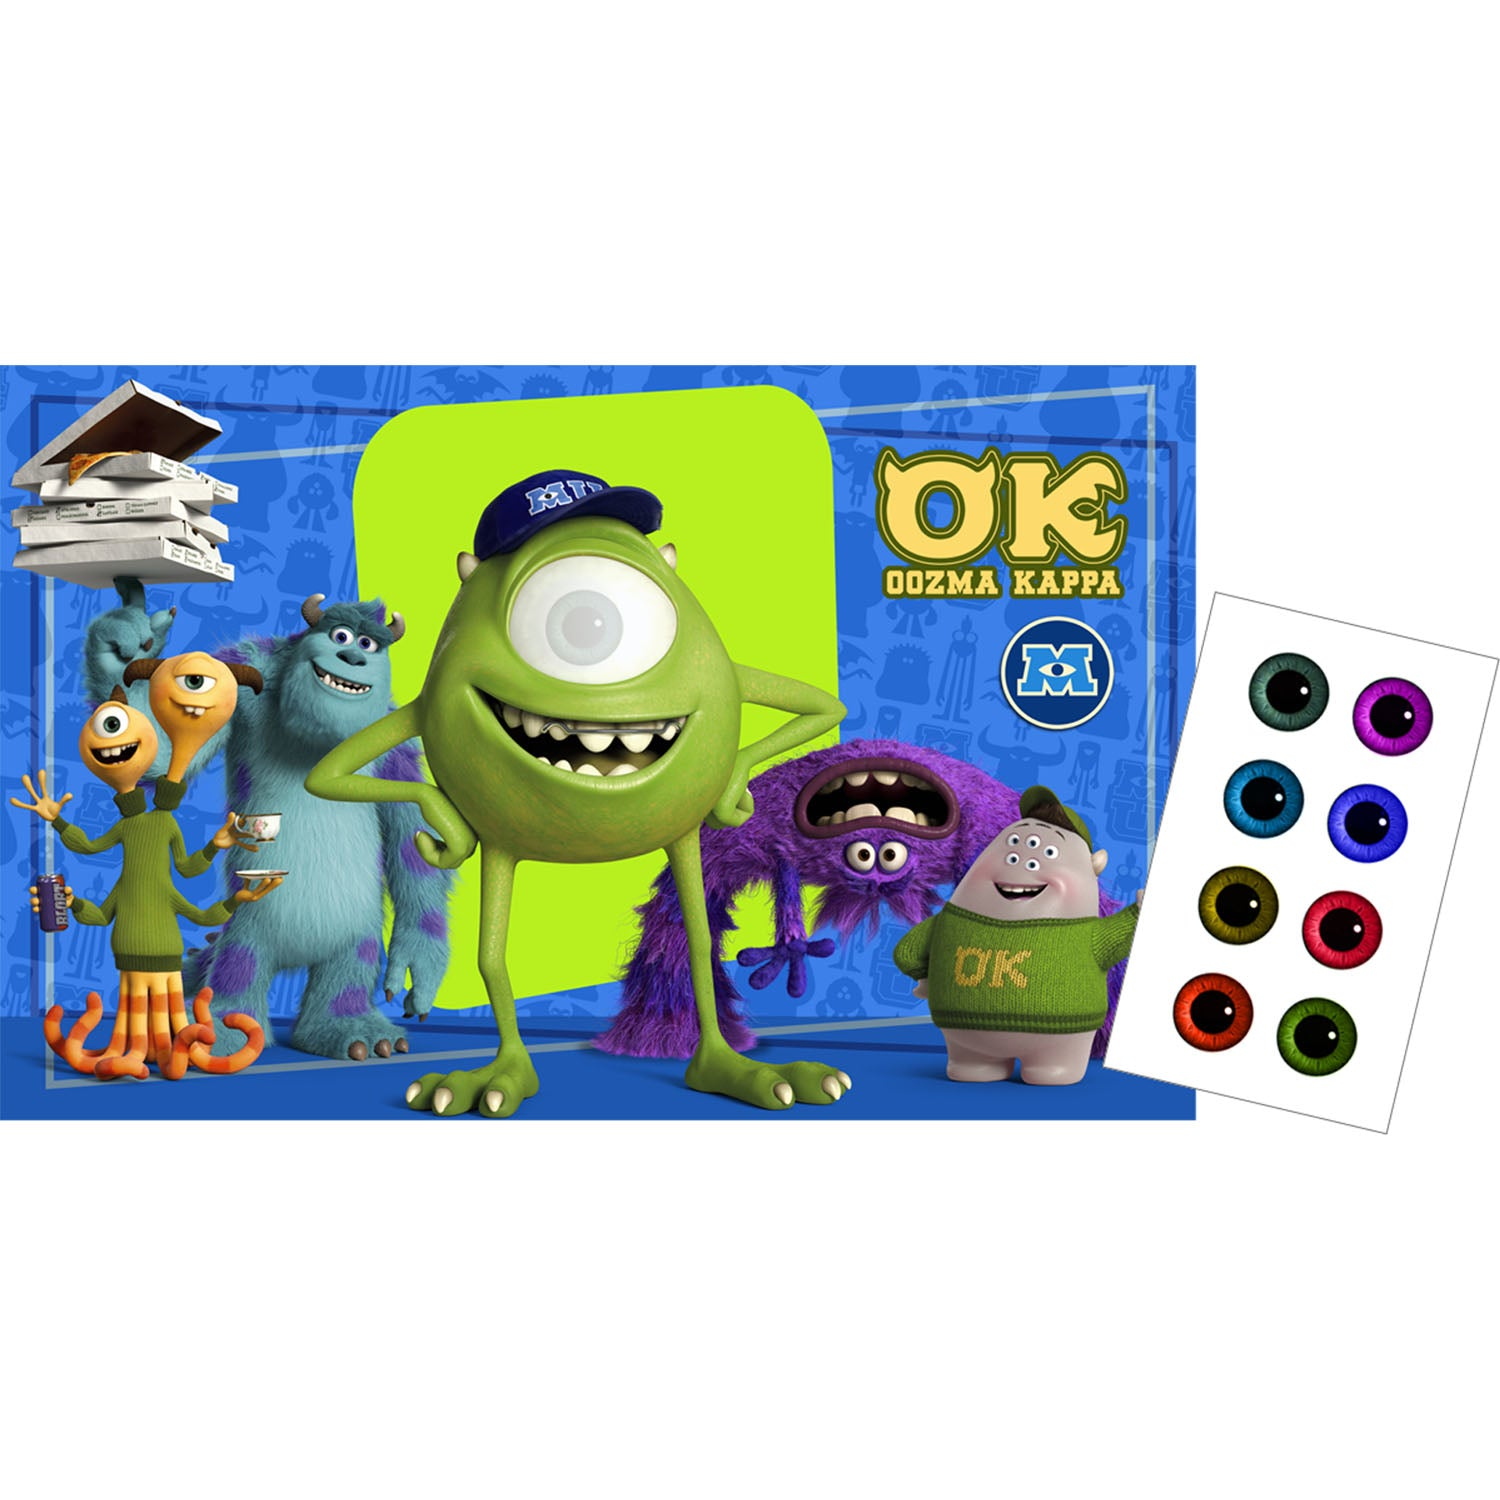 Monsters University Party Supplies - Monsters University Party Game